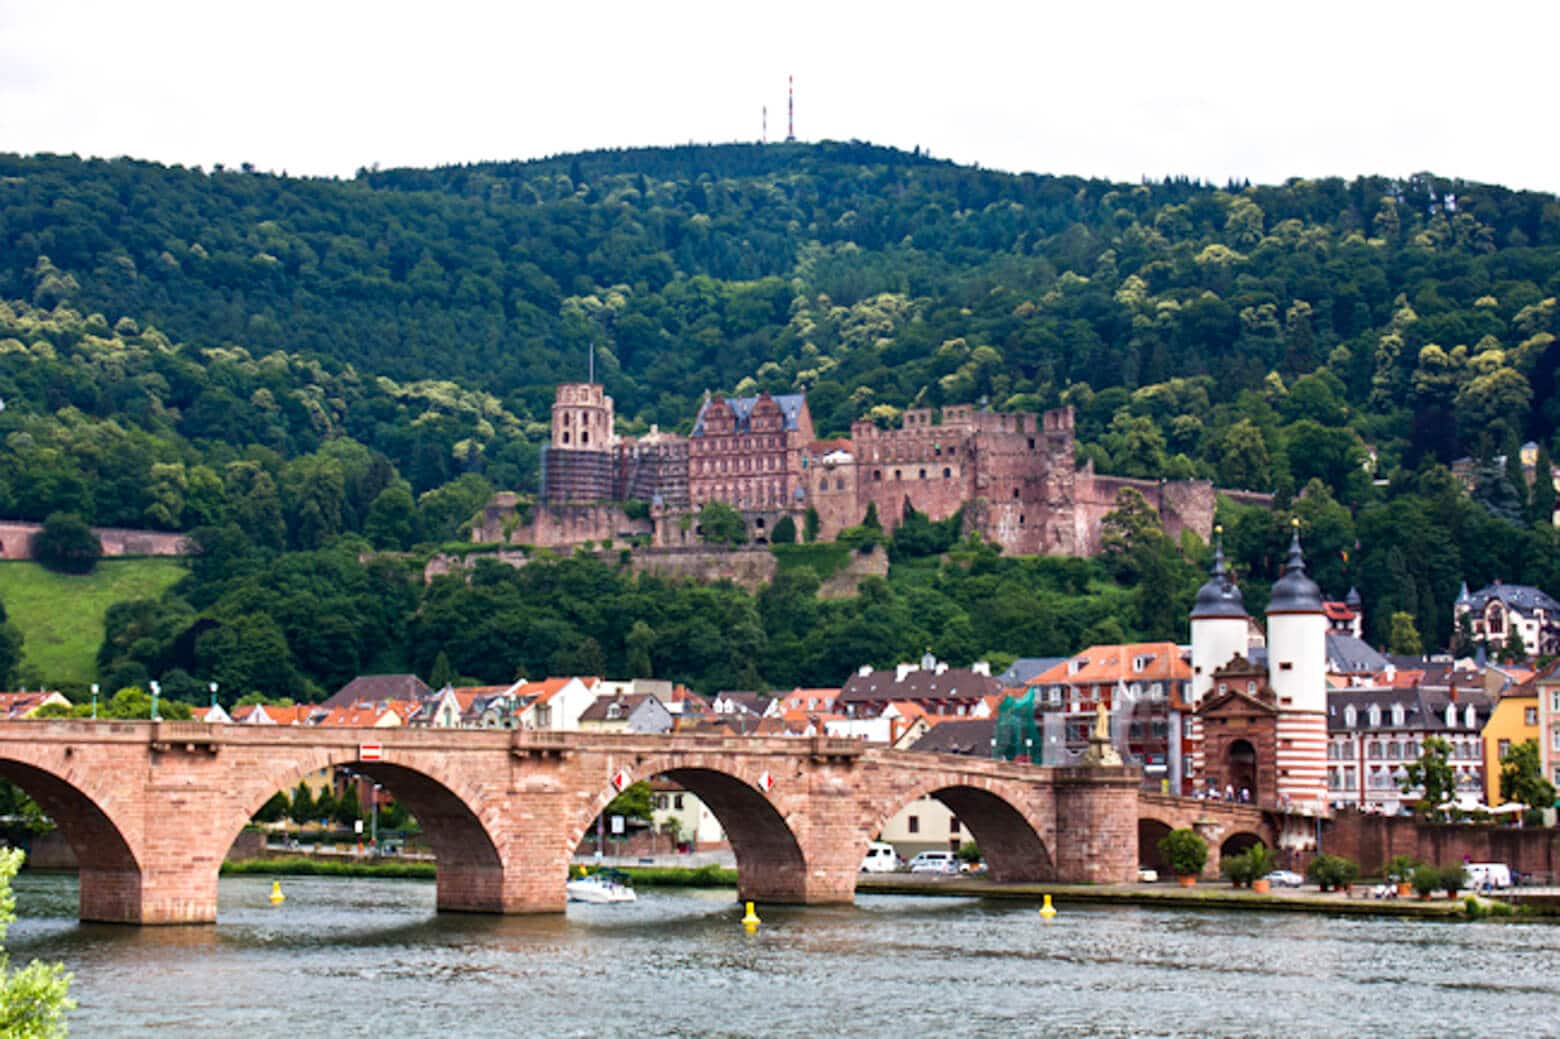 Heidelberg Castle and the Bridge